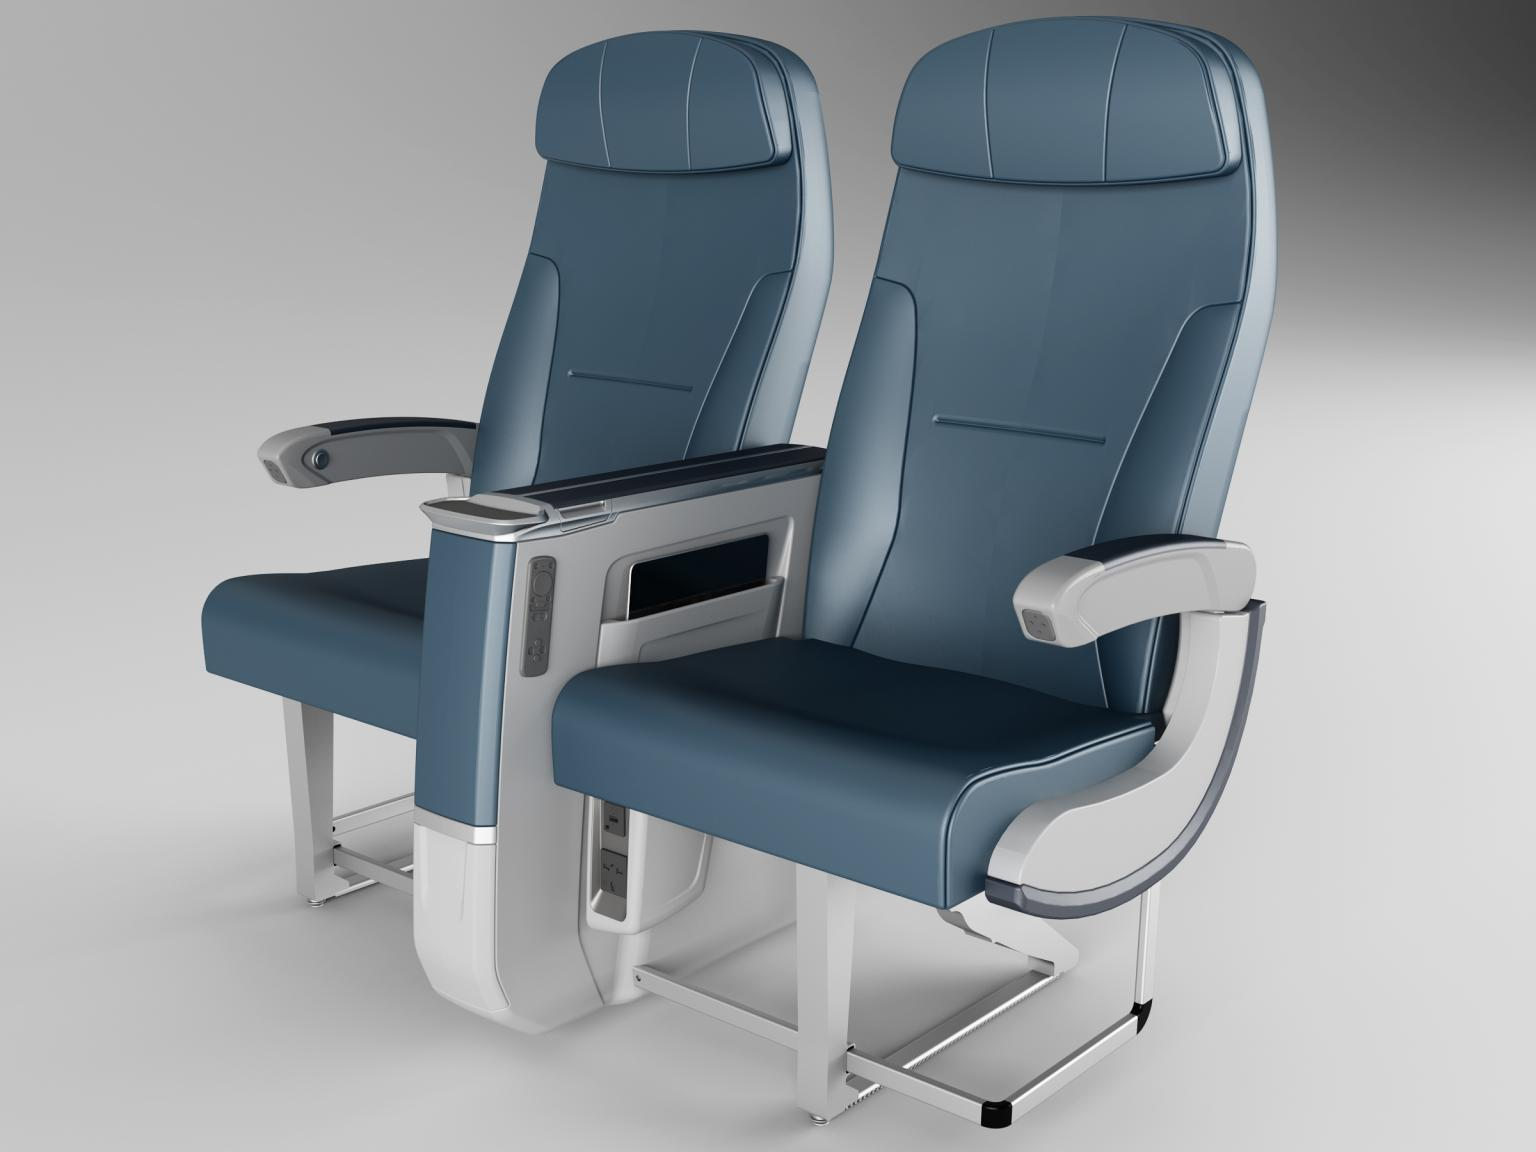 A low-profile hinge reduced seat weight and enhanced performance